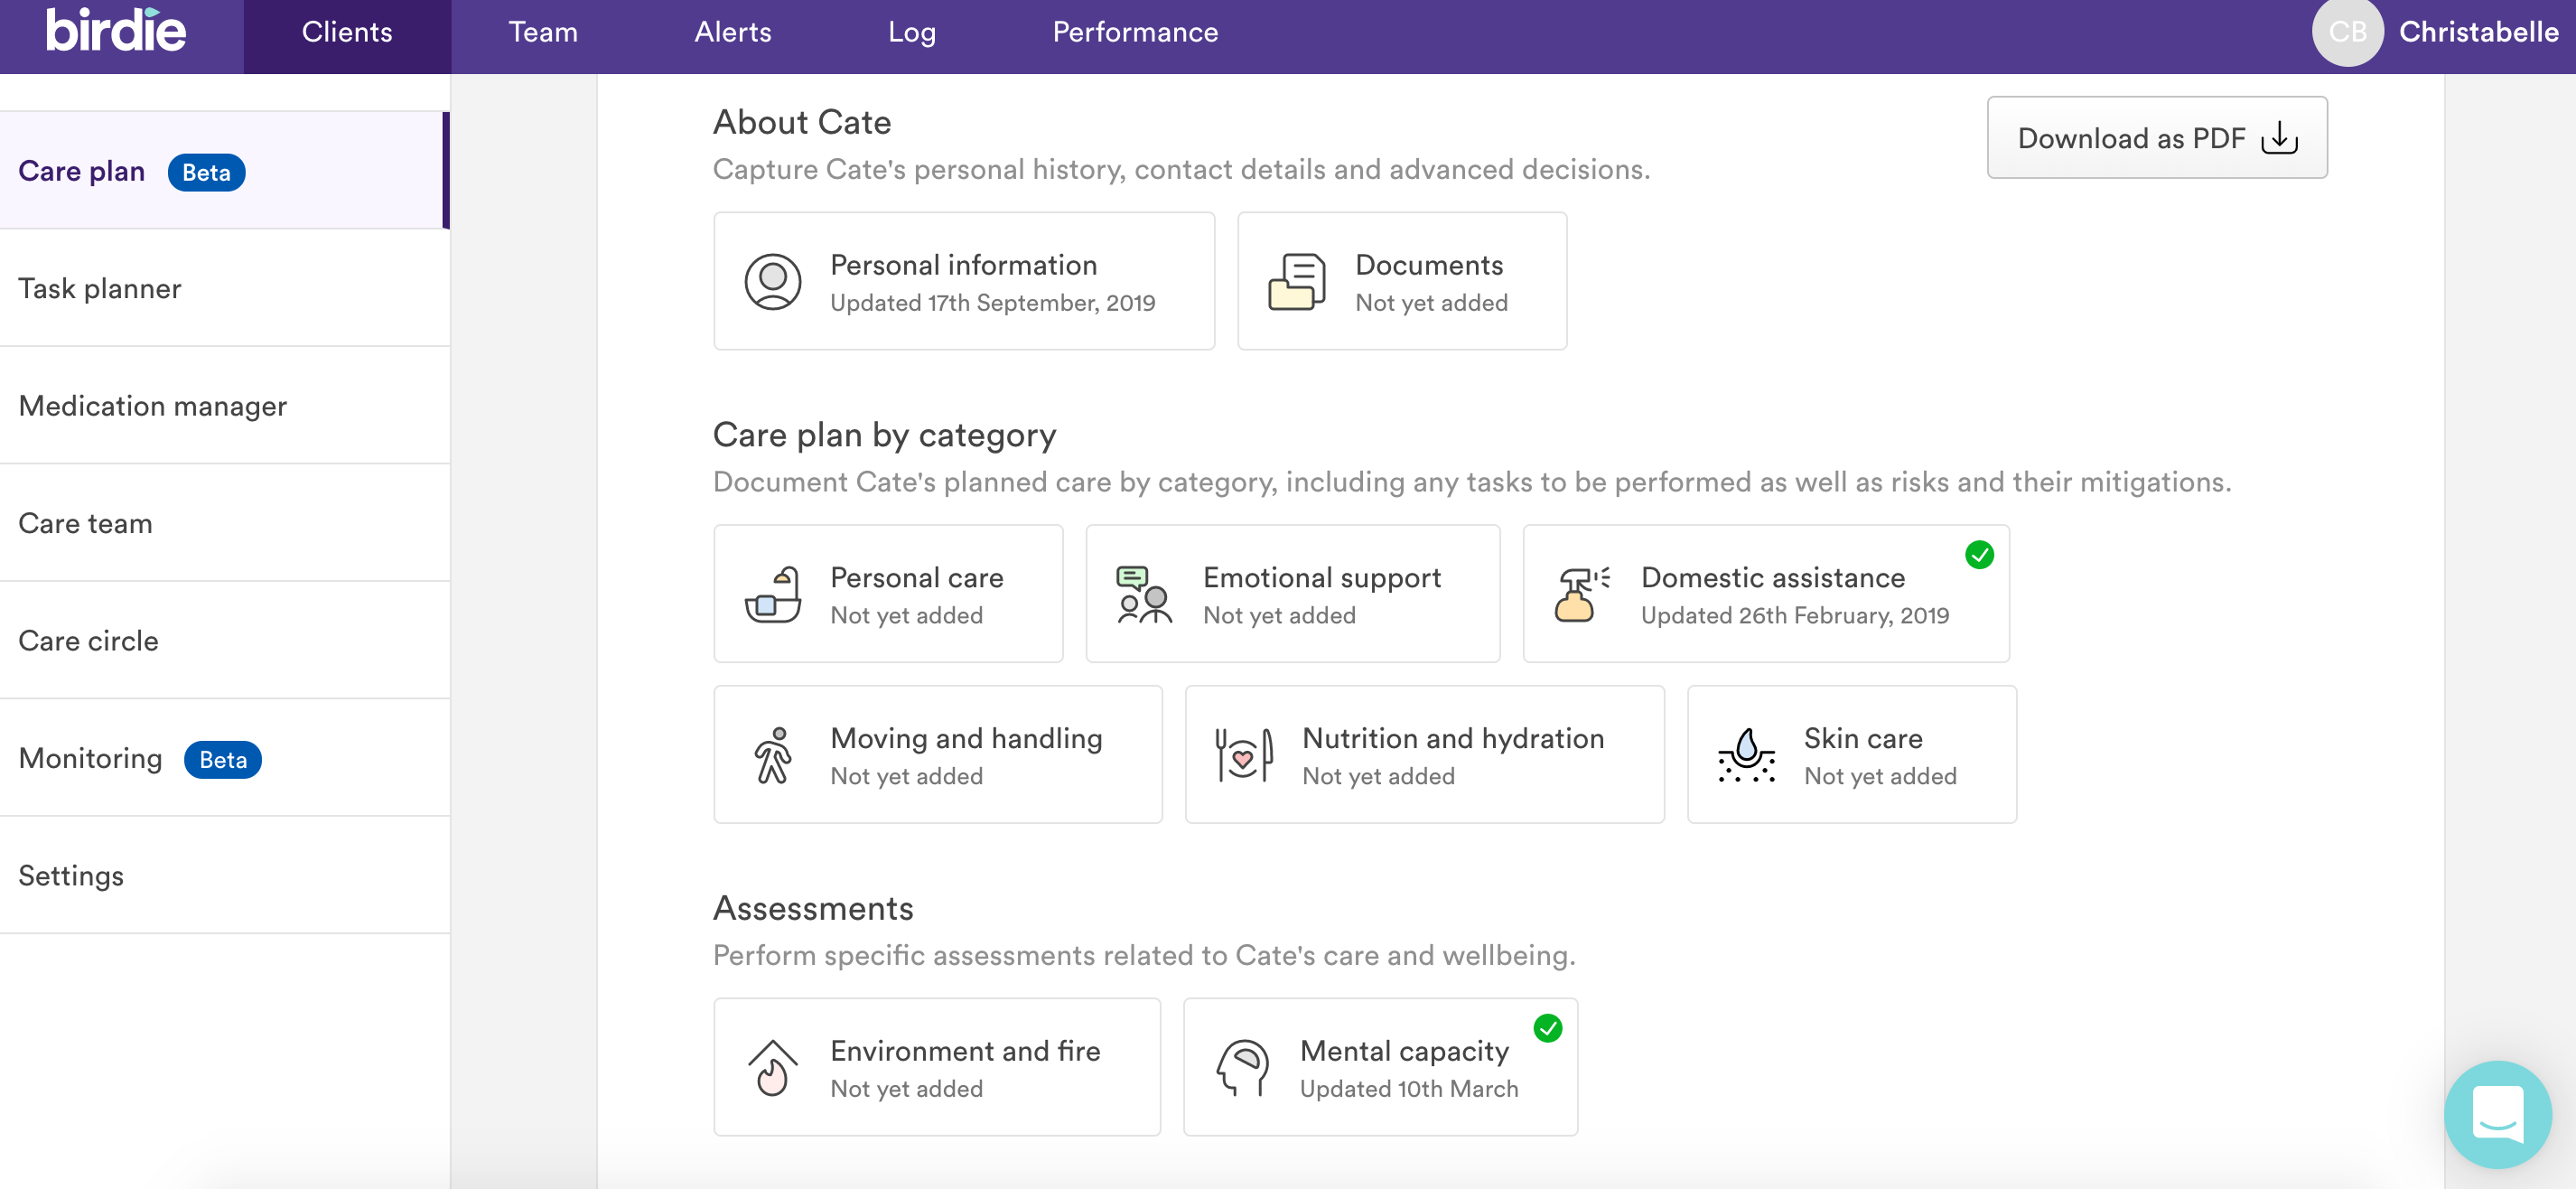 Birdie user interface showing assessments and care planning tools